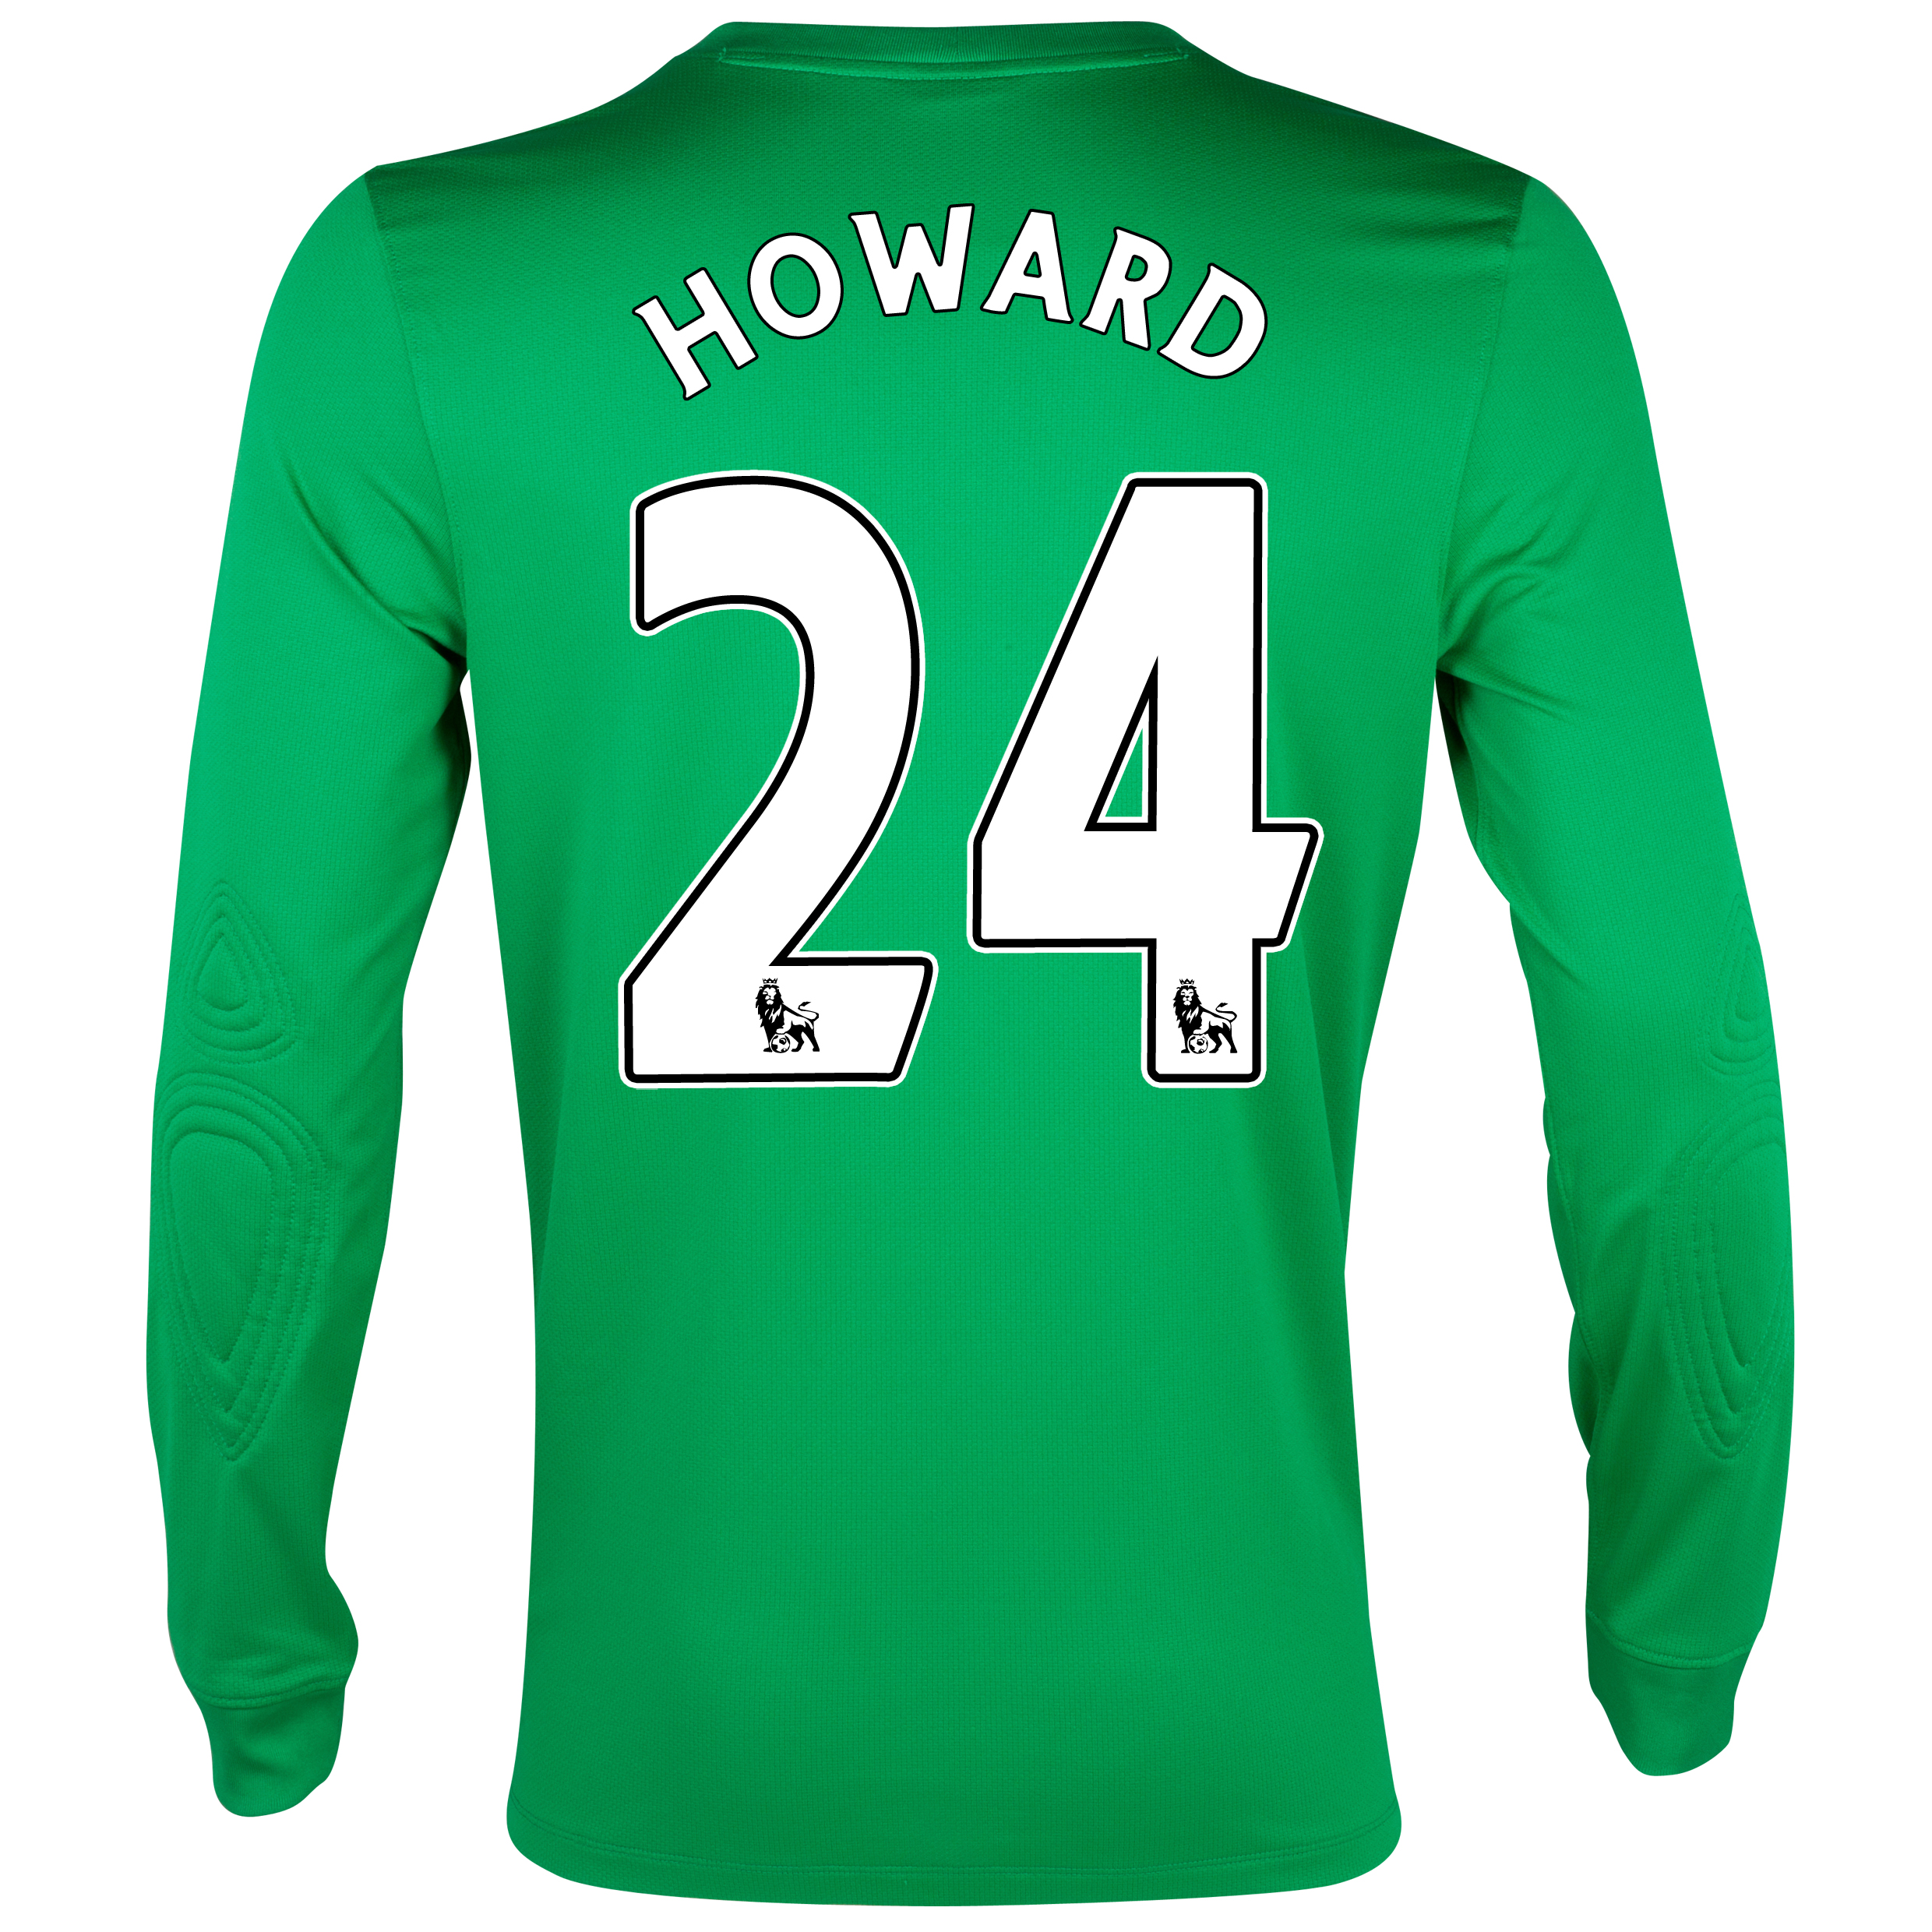 Everton Home Goalkeeper Shirt 2012/13 with Howard 24 printing